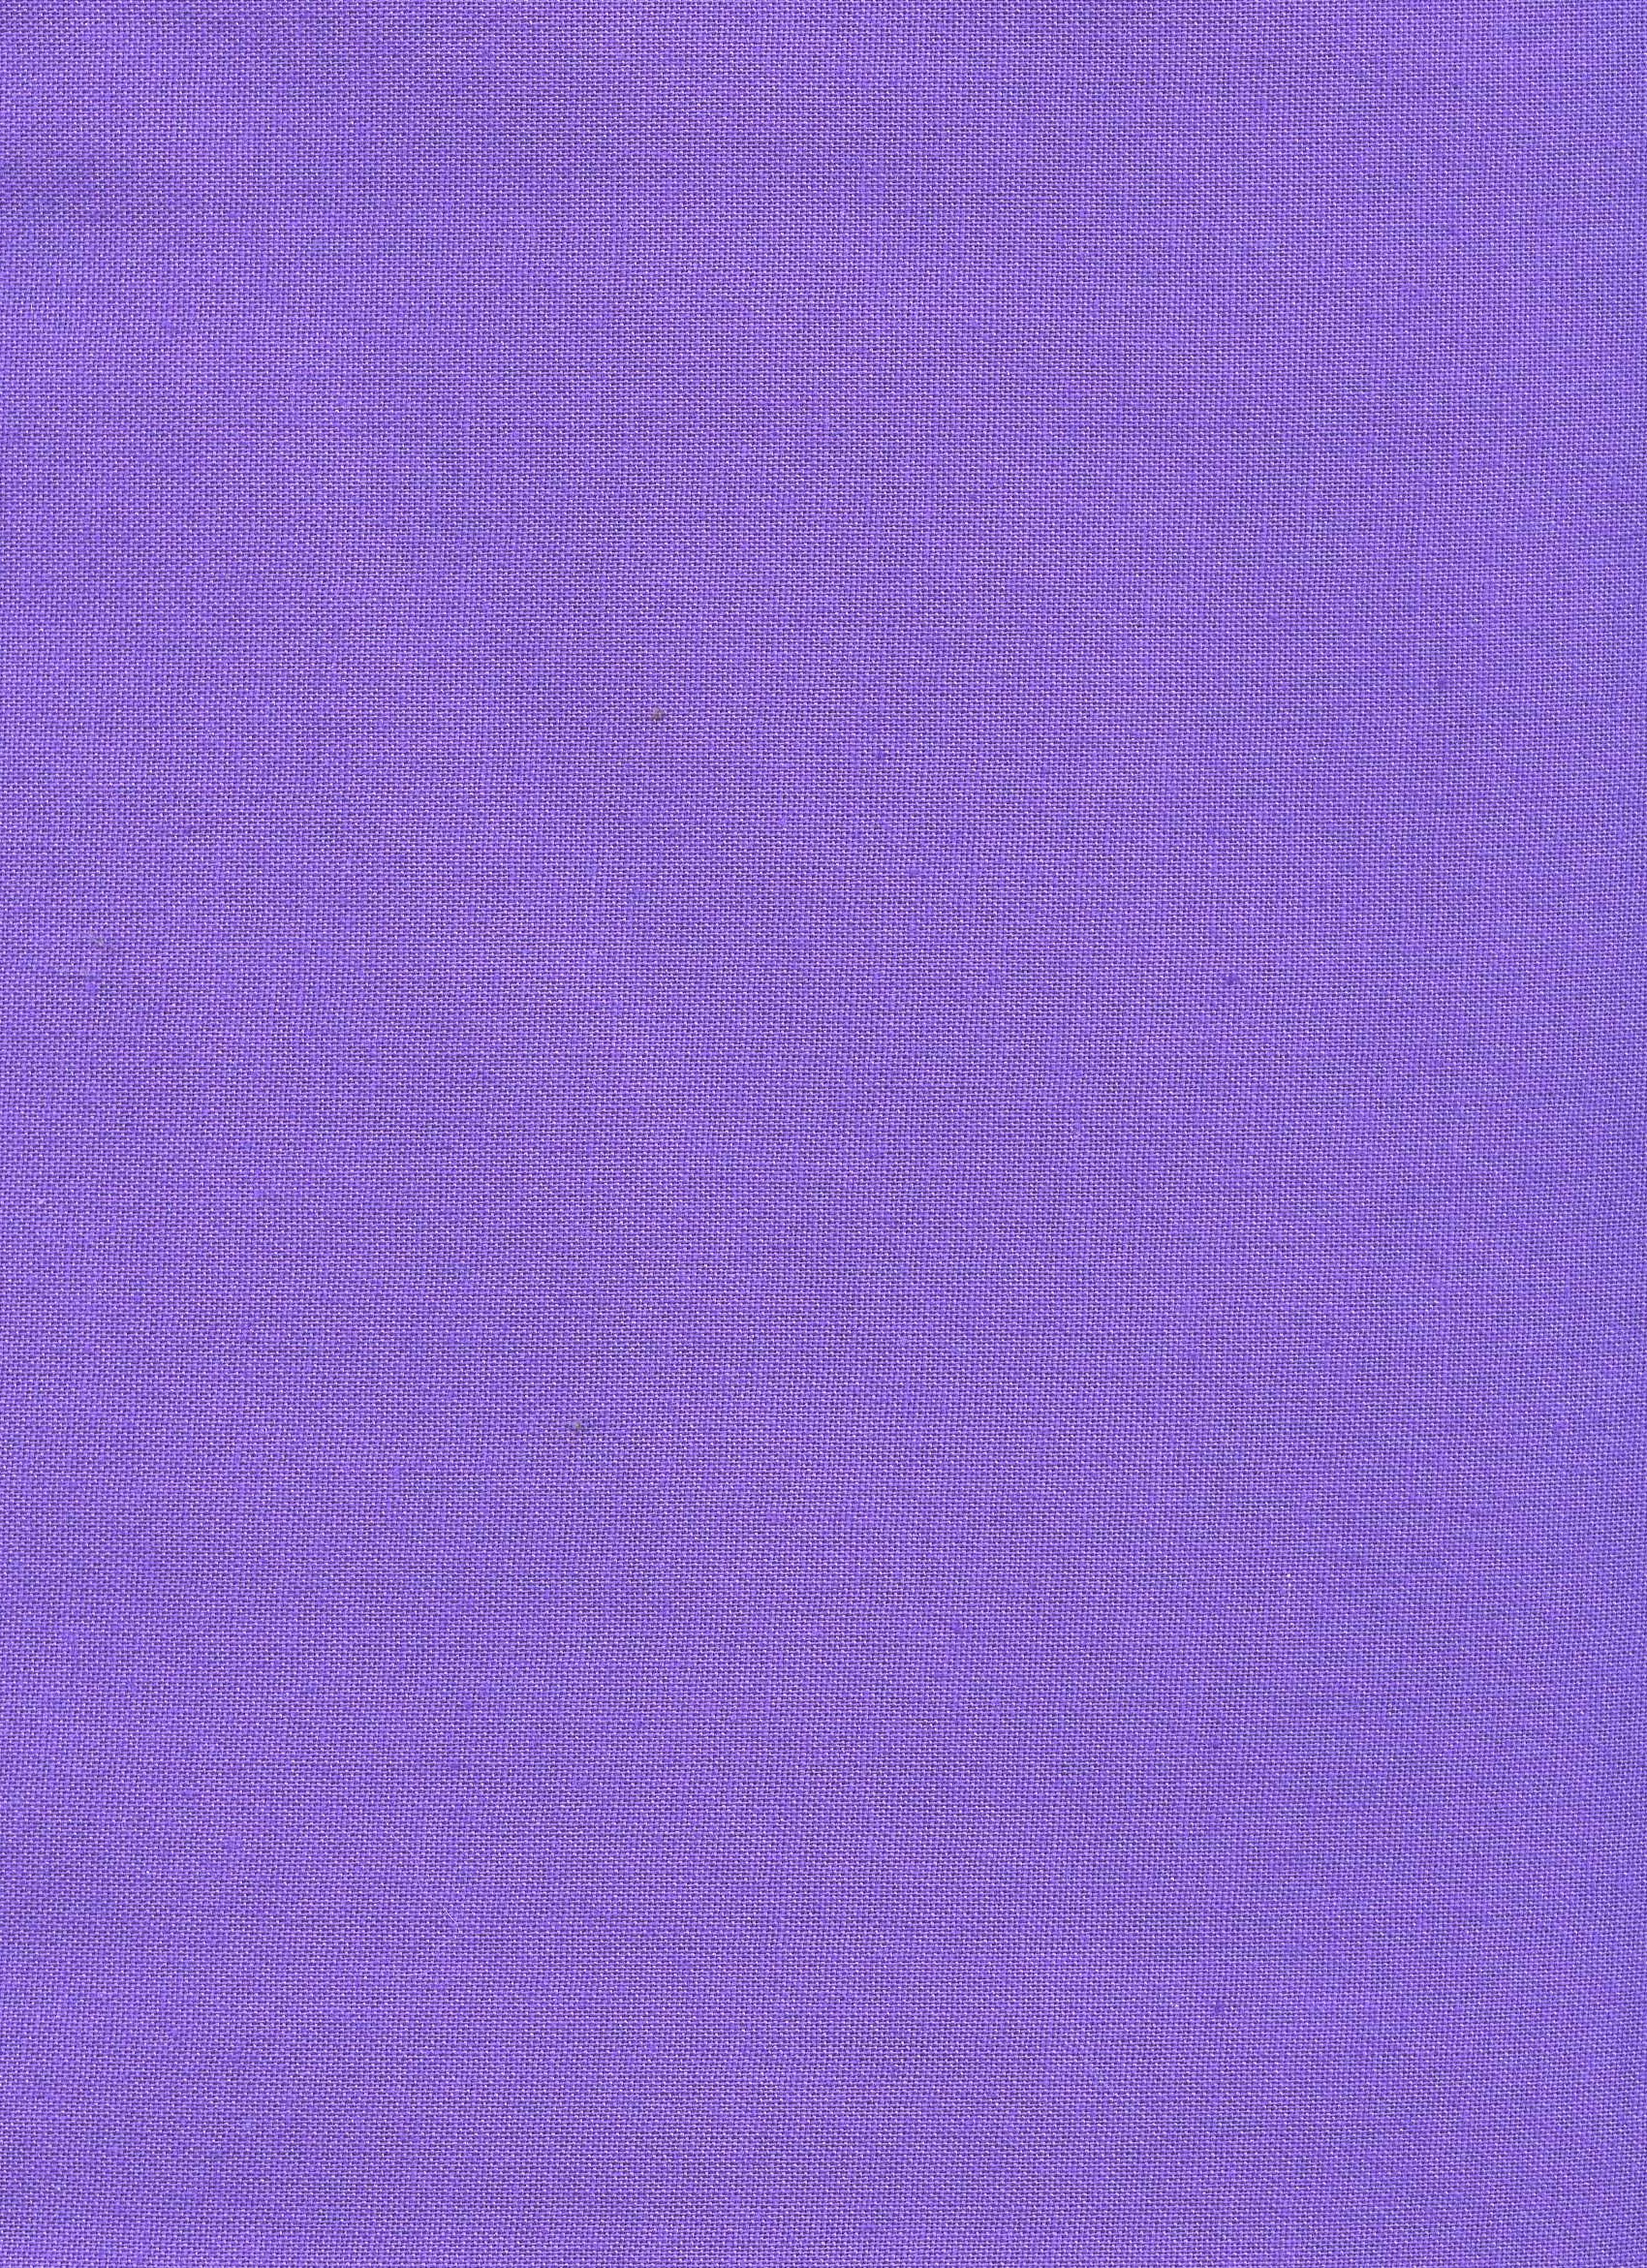 Purple Broad Cloth